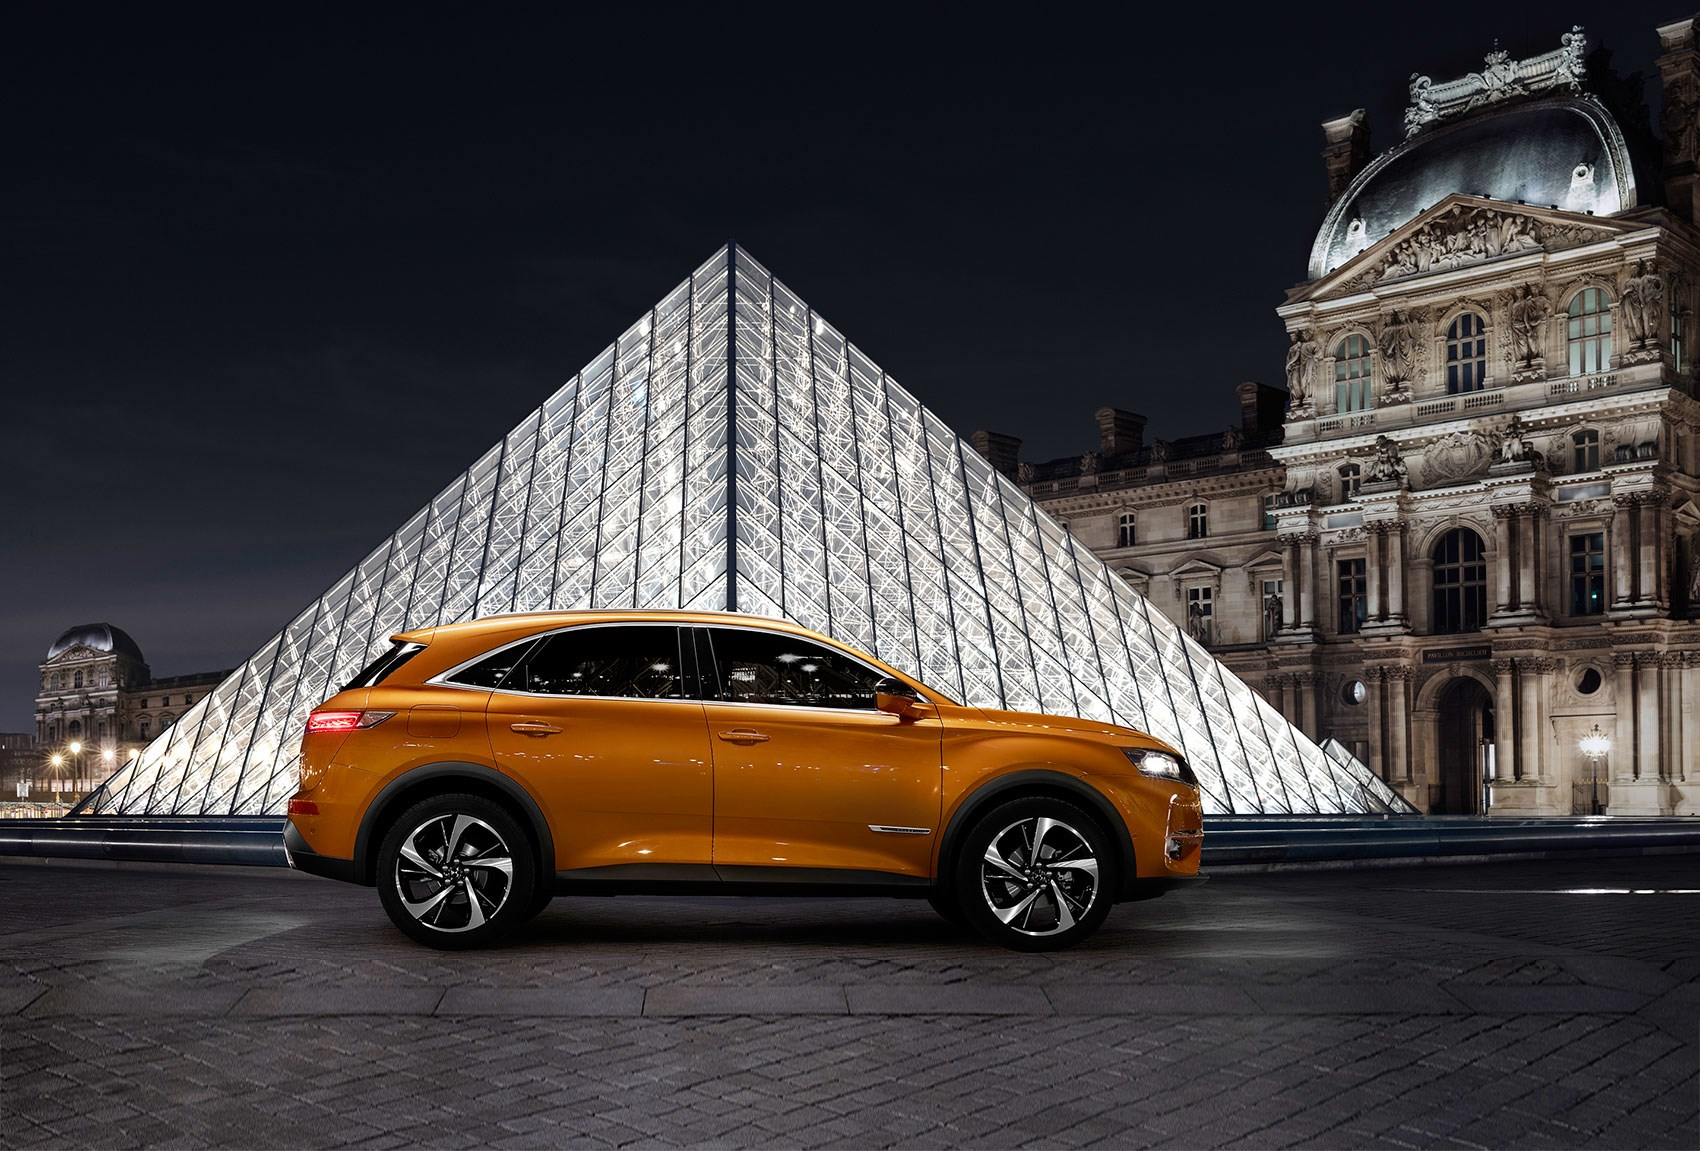 ds7 crossback suv new french president macron has first dibs by car magazine. Black Bedroom Furniture Sets. Home Design Ideas